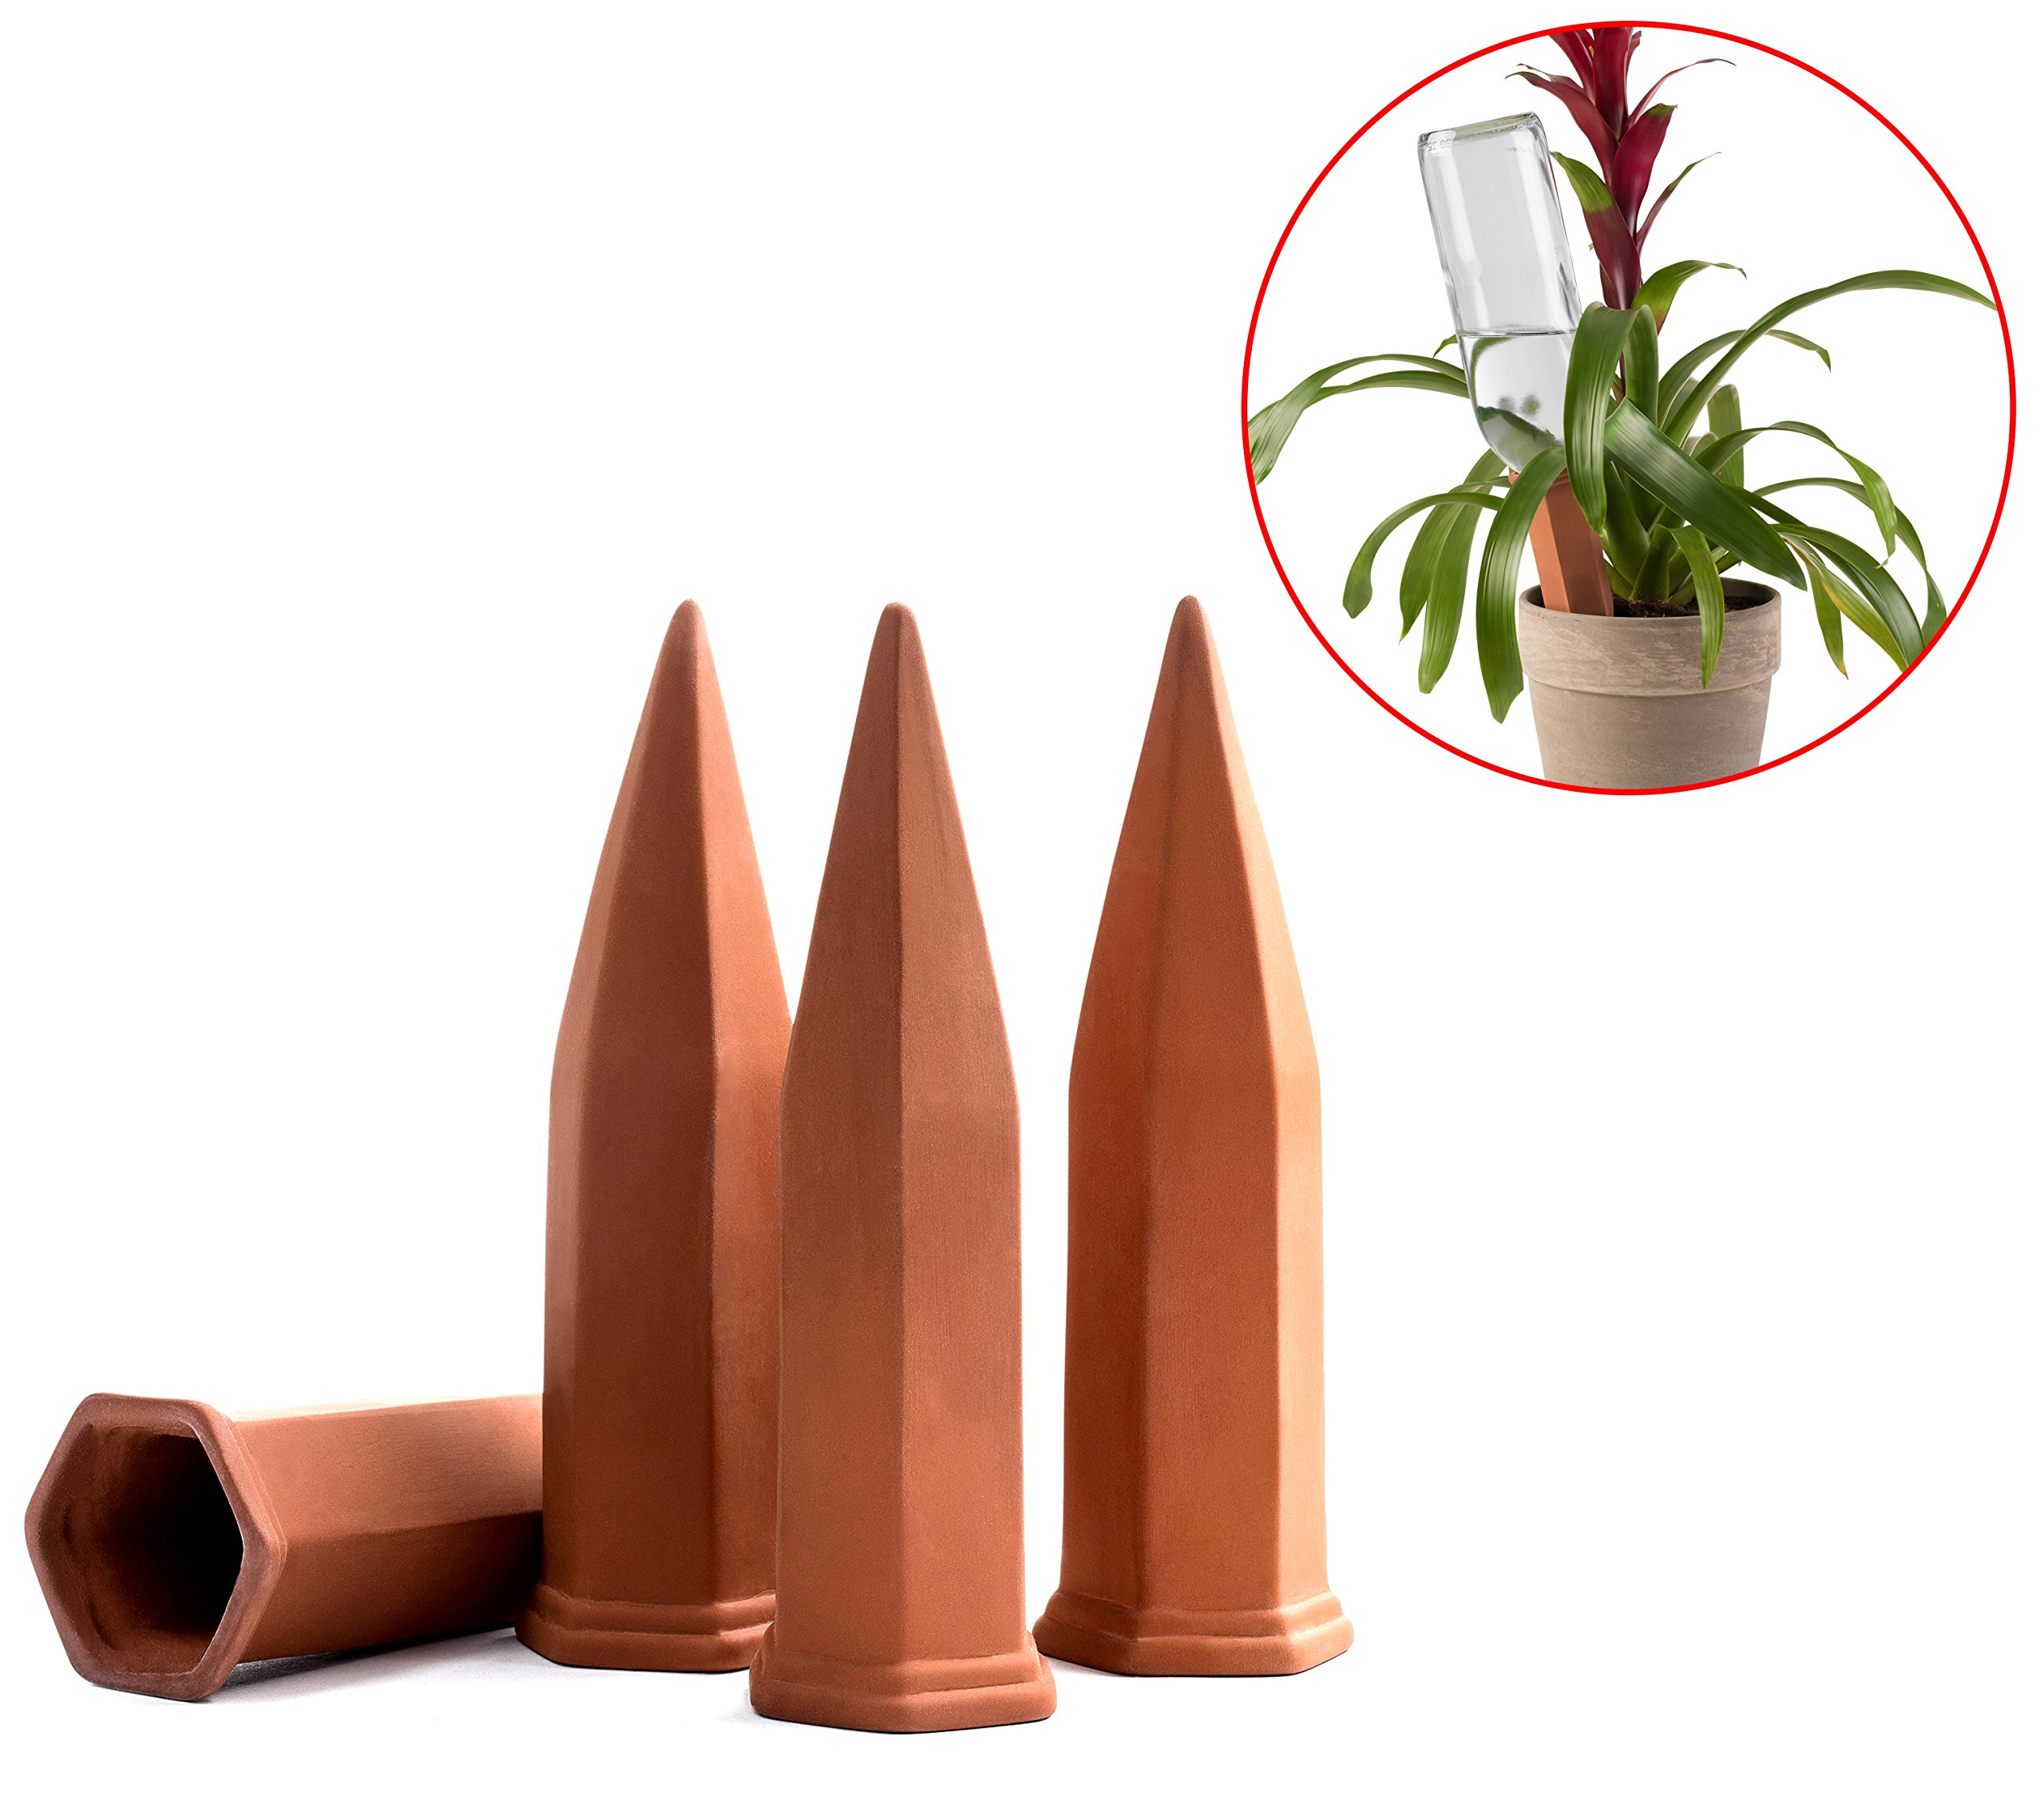 Modern Innovations Terracotta Plant Watering Stakes for Home and Vacation Plant Watering, Set of 4 by Modern Innovations